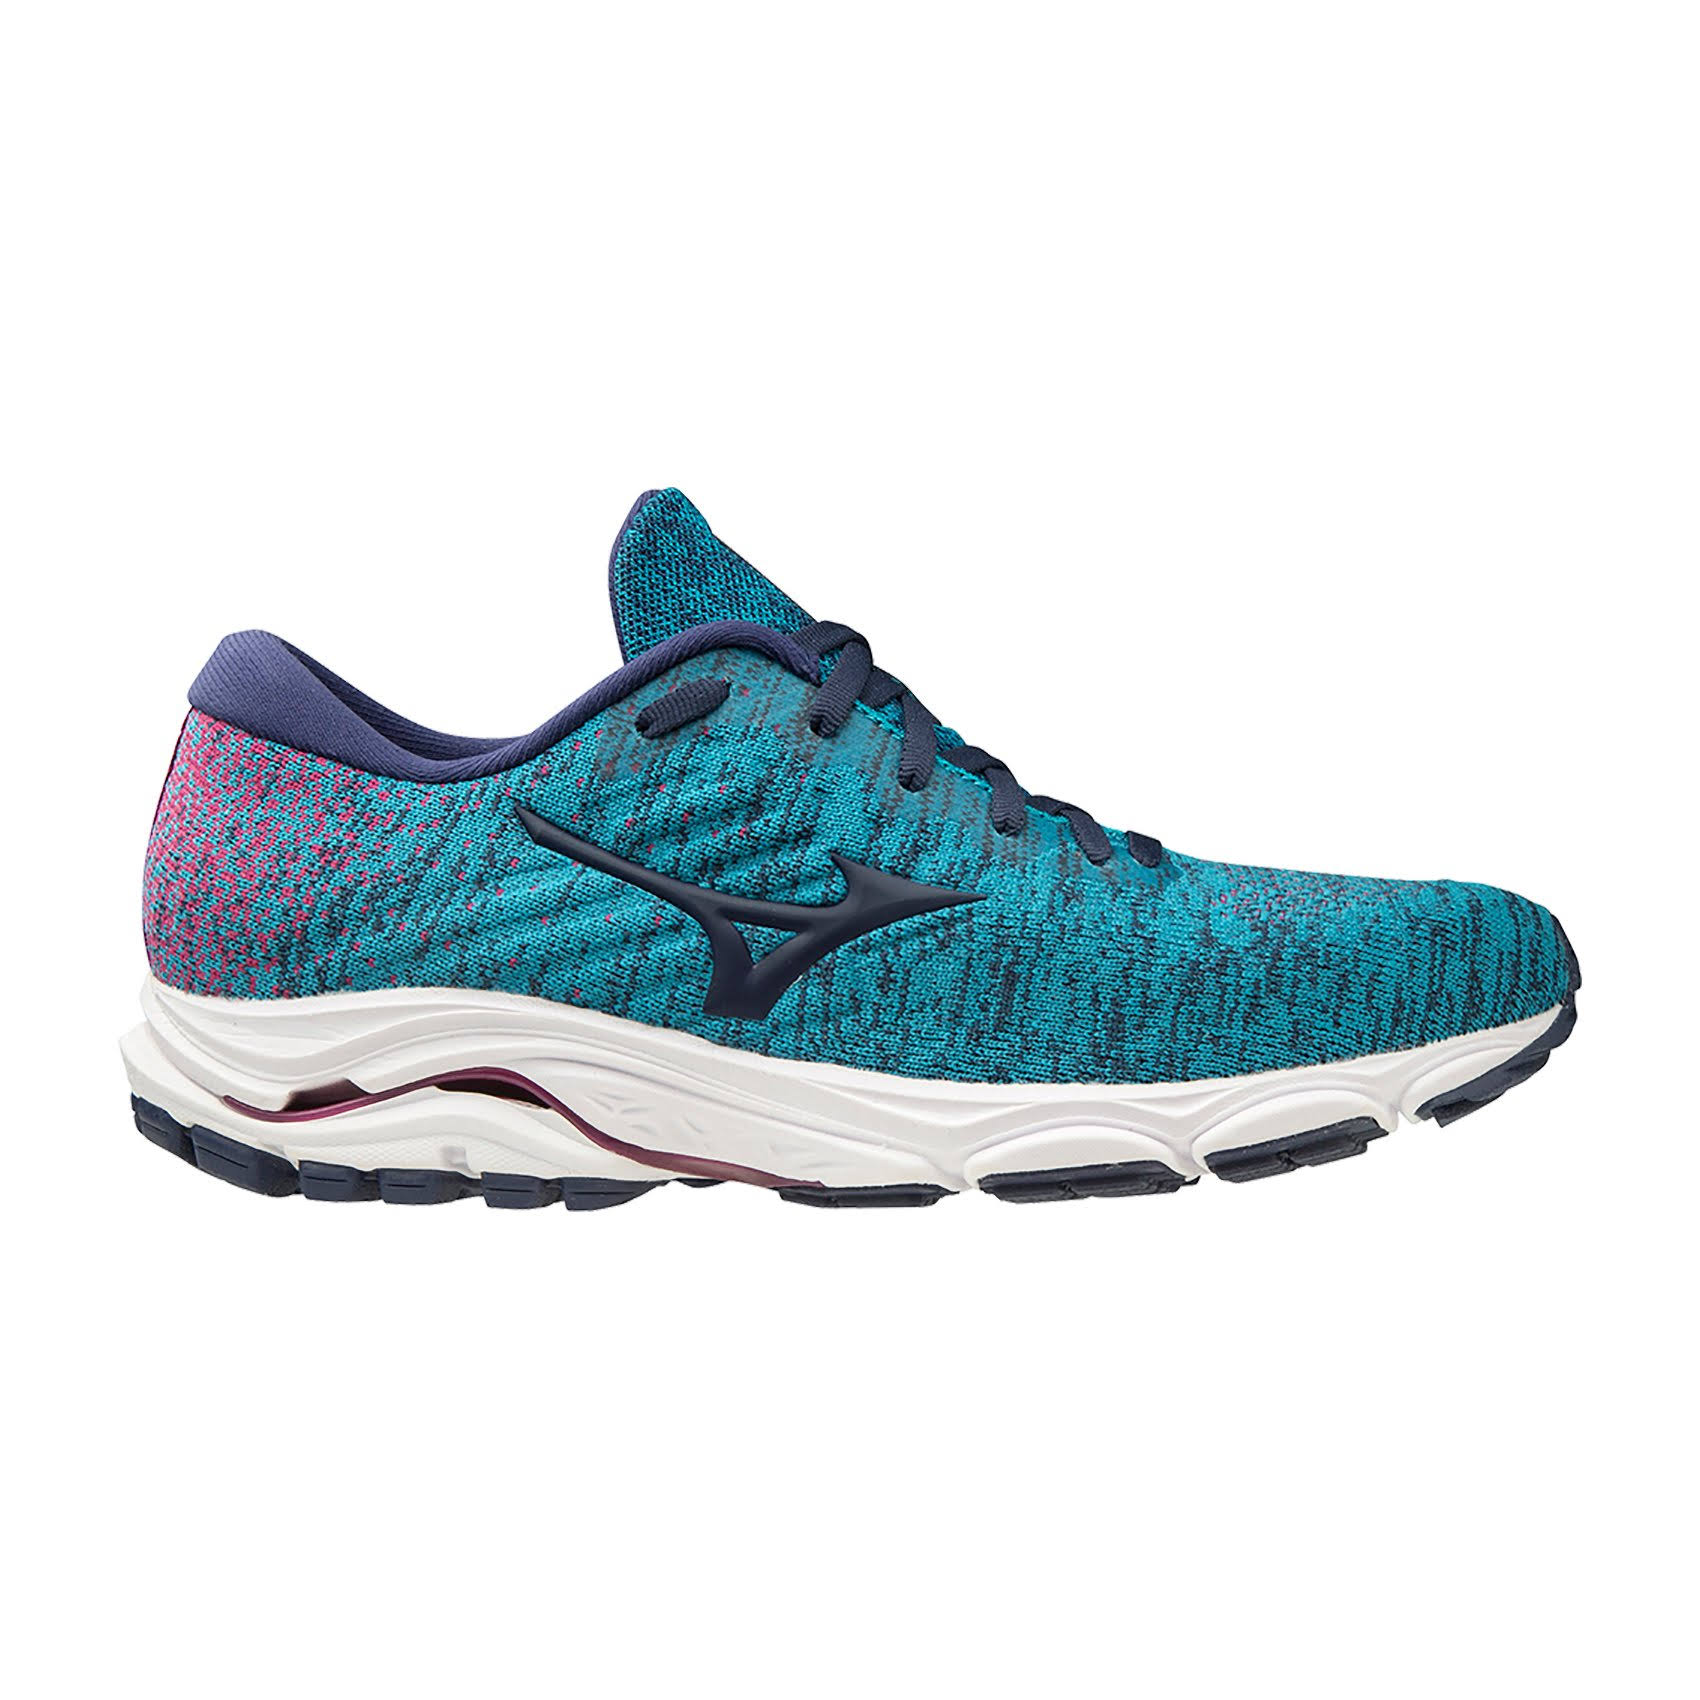 Mizuno Wave Inspire 16 Waveknit Women